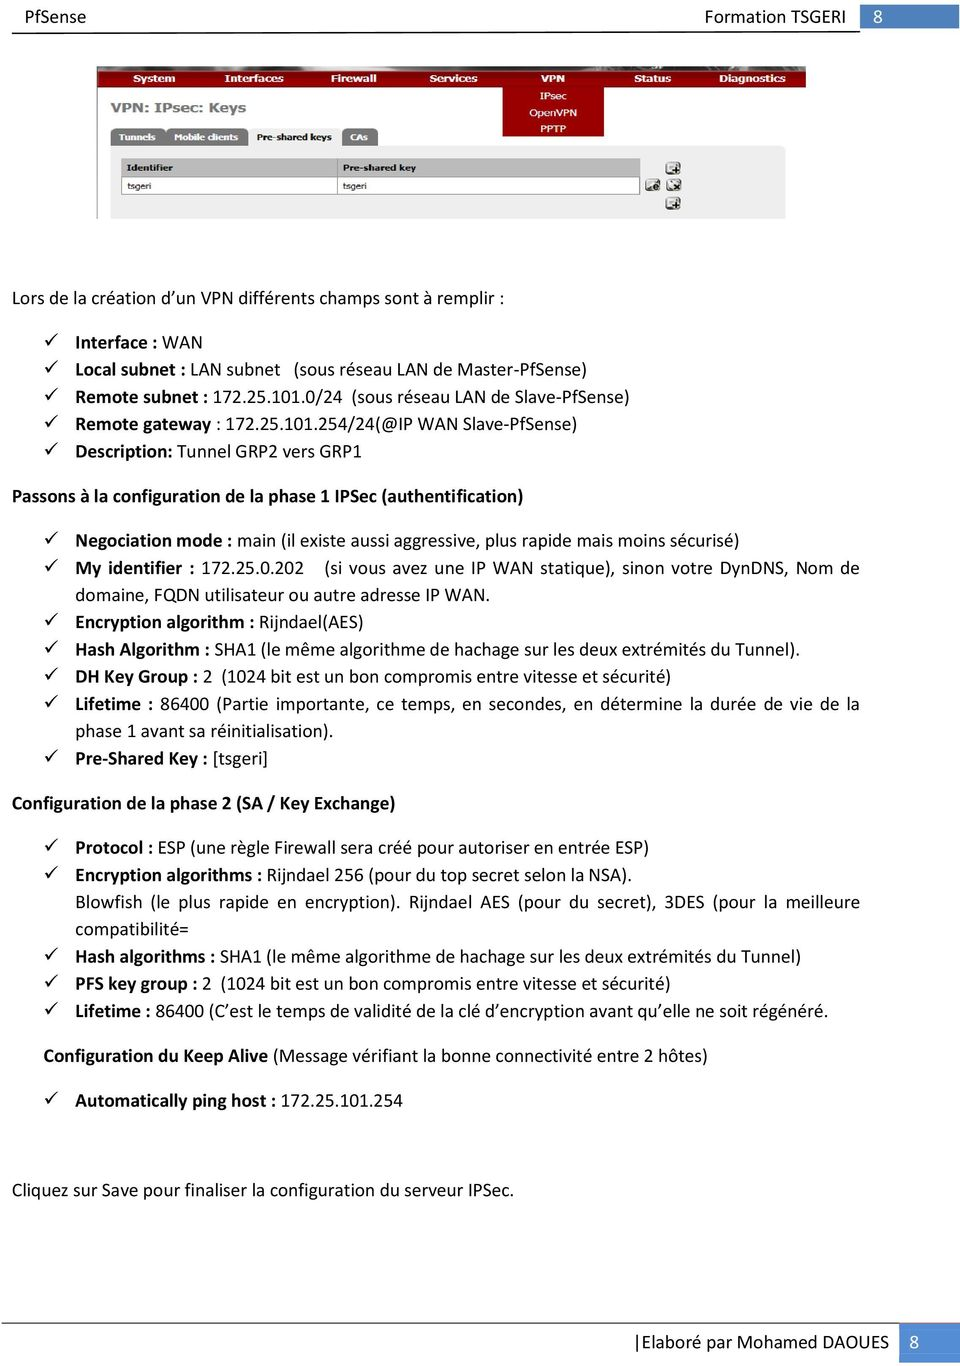 254/24(@IP WAN Slave-PfSense) Description: Tunnel GRP2 vers GRP1 Passons à la configuration de la phase 1 IPSec (authentification) Negociation mode : main (il existe aussi aggressive, plus rapide